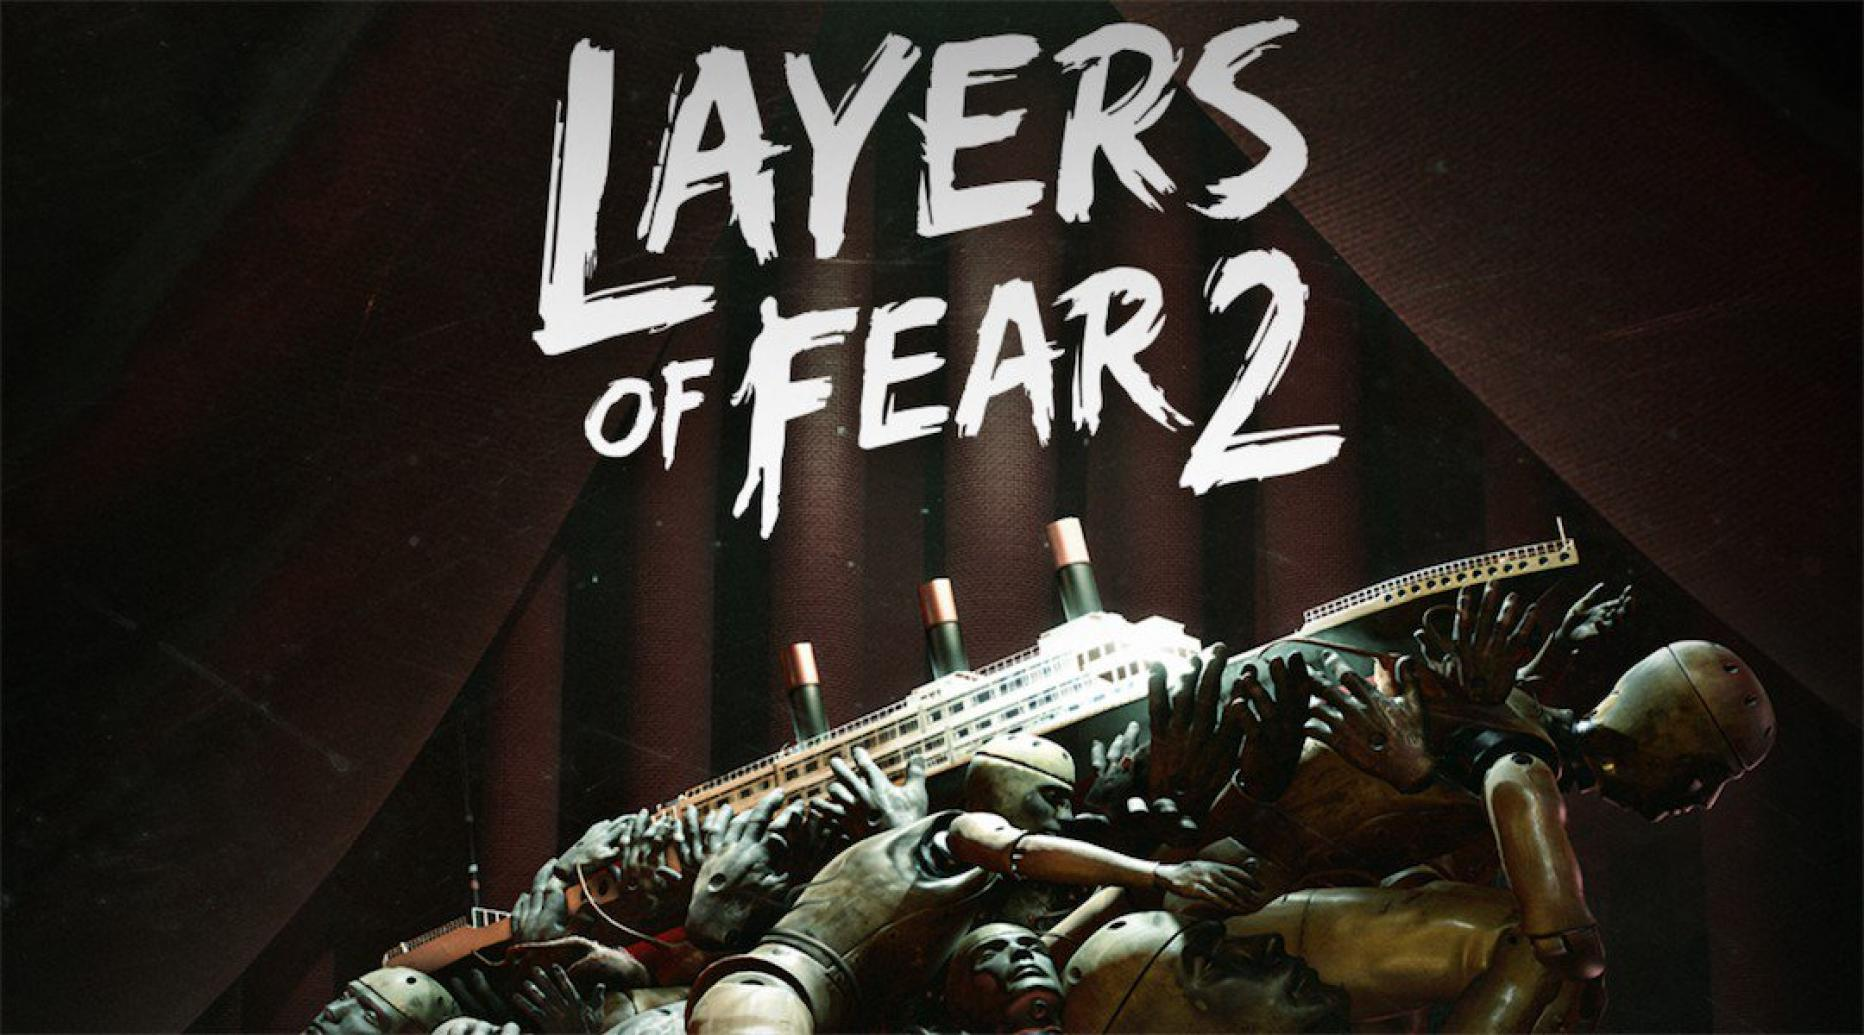 layers-of-fear-2-release-date.jpg